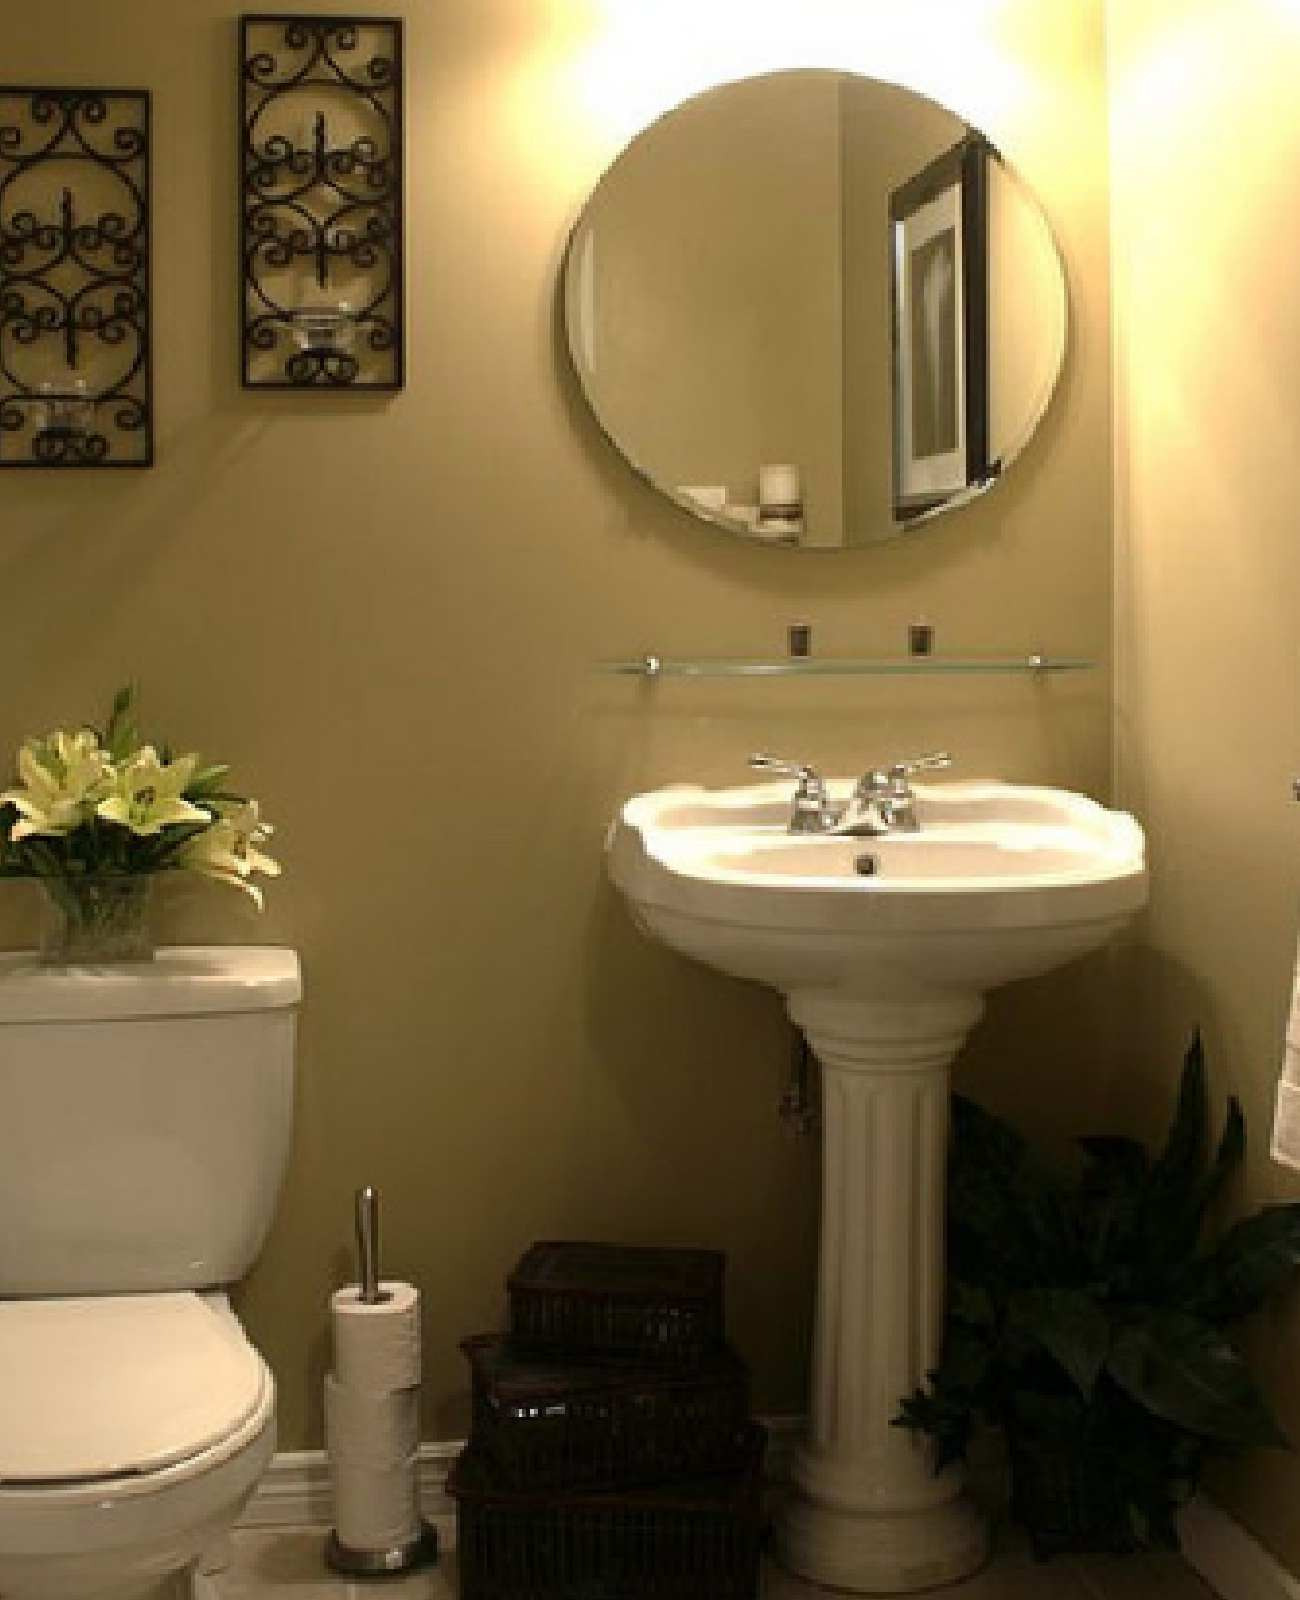 Decorating Ideas for Small Bathrooms with Pictures Awesome Bathroom Small Bathroom Decorating Ideas to Her with